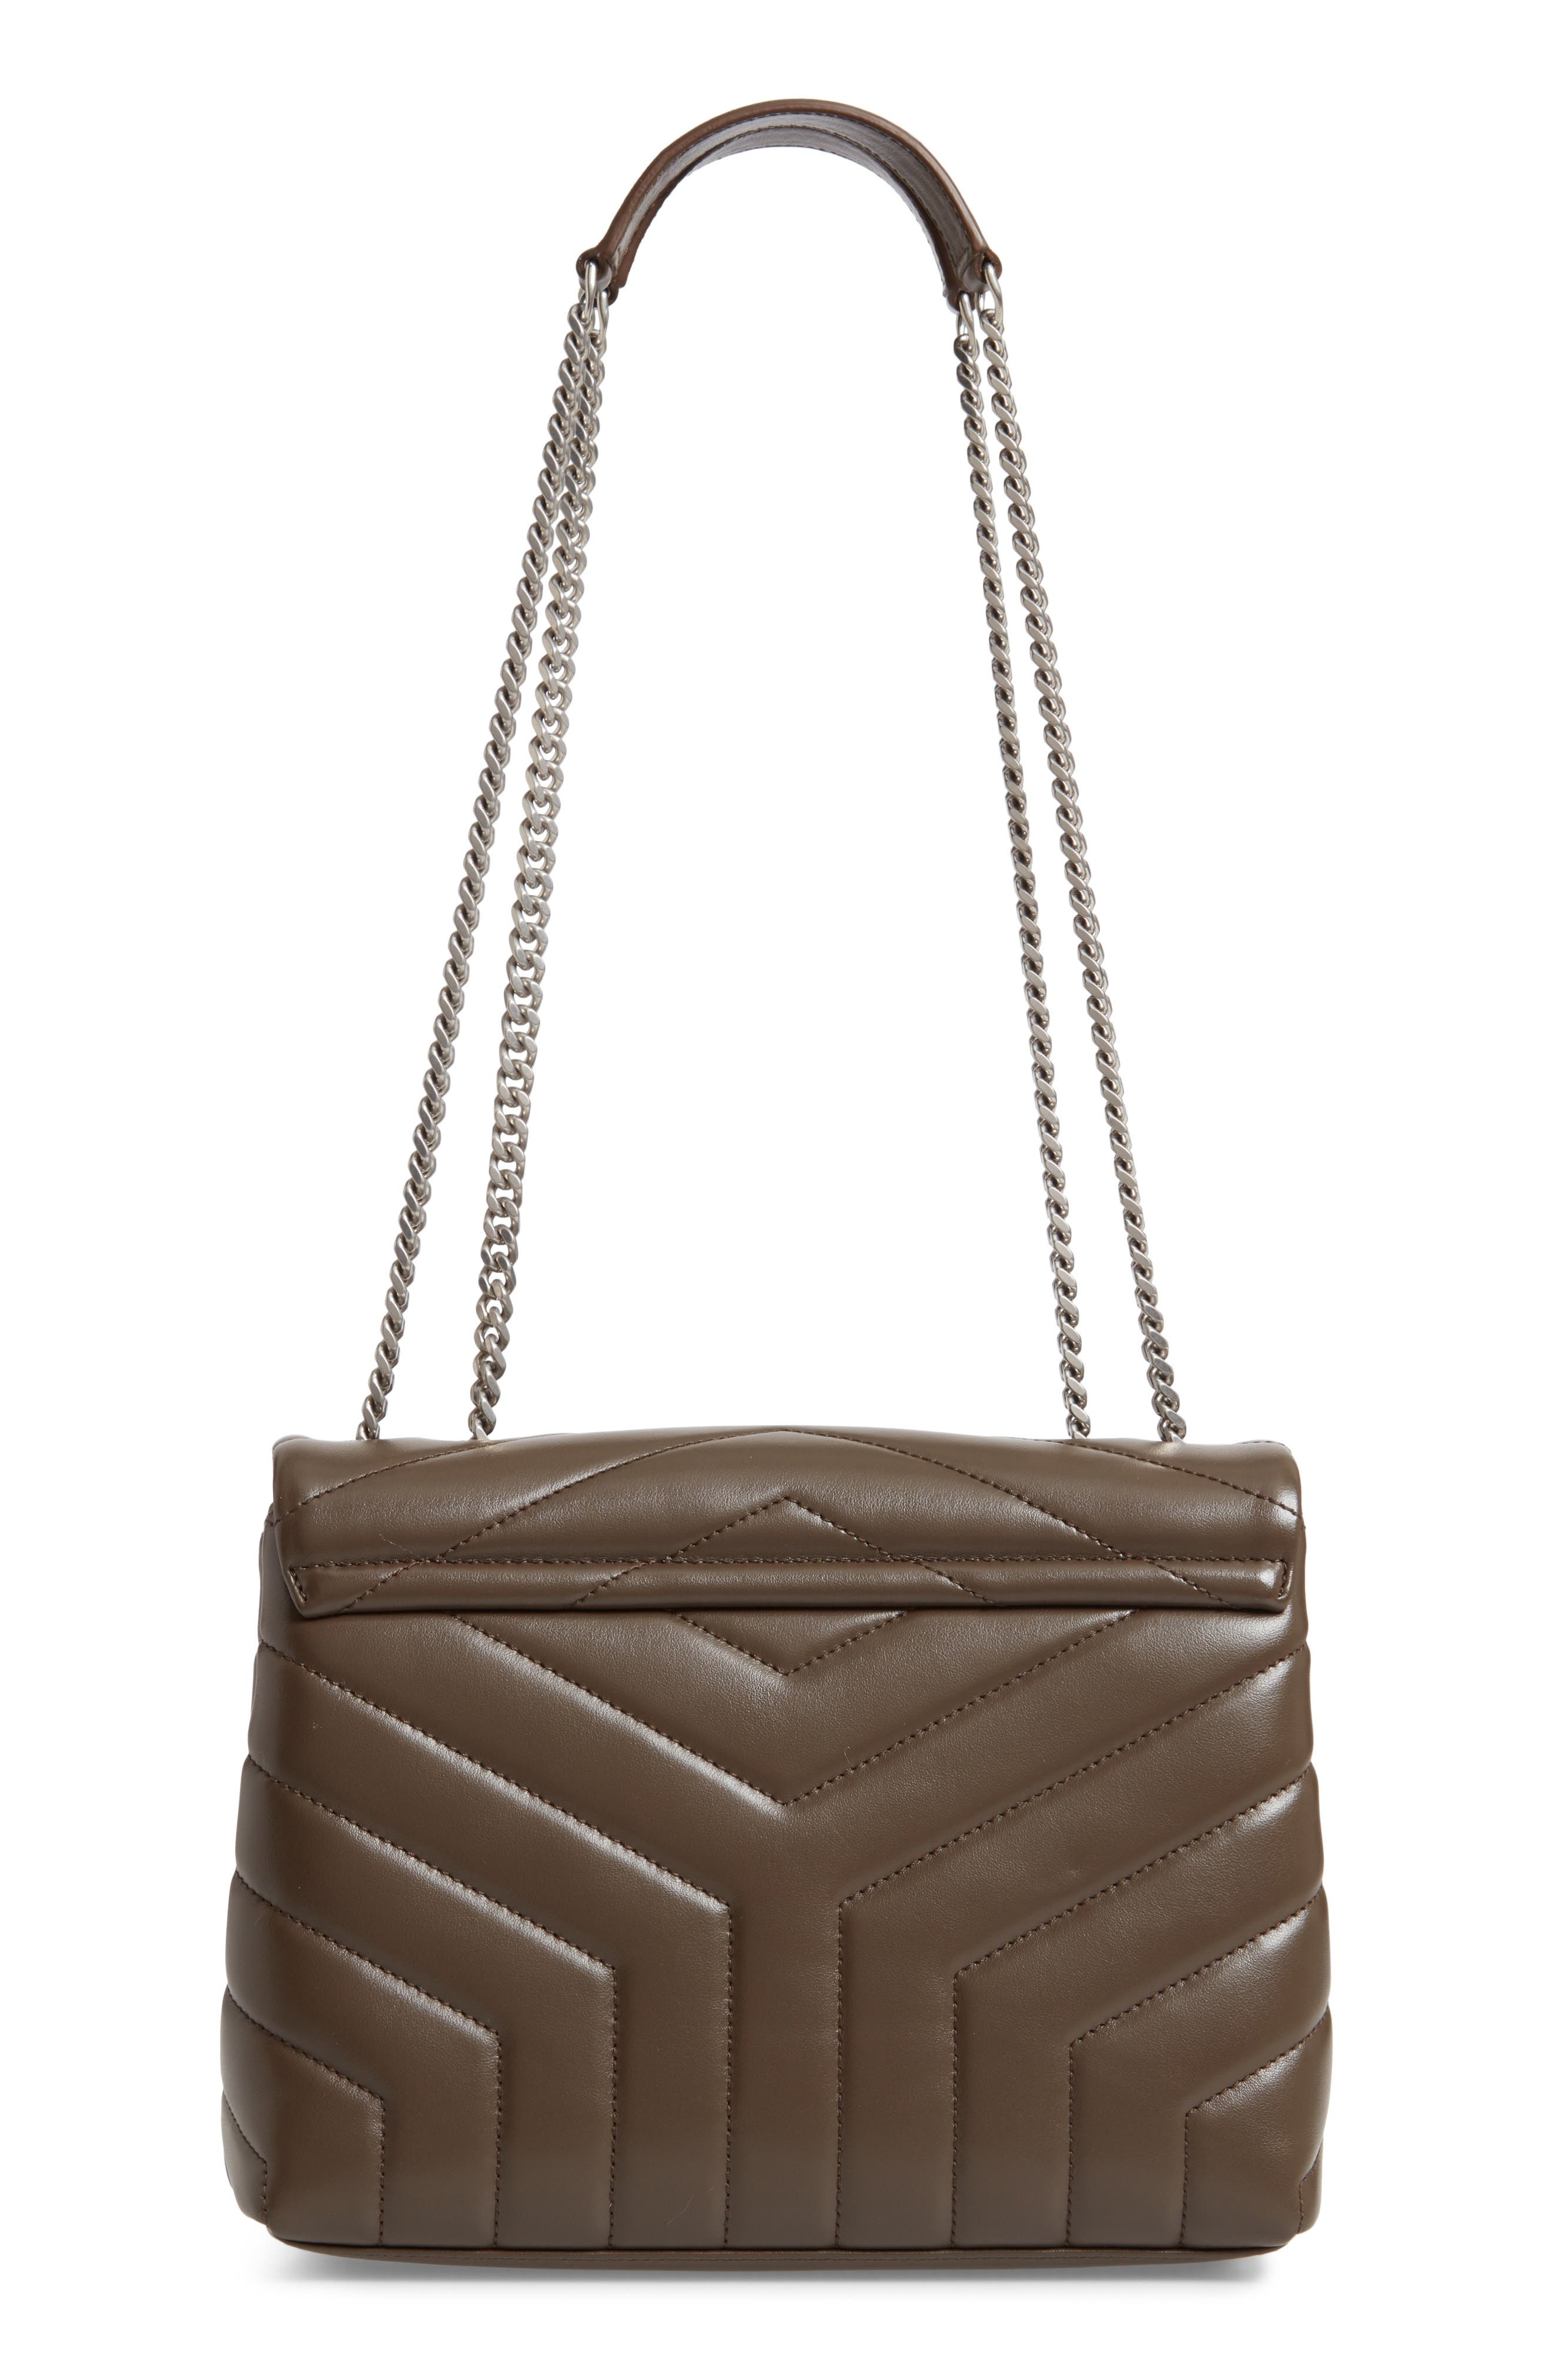 Small Loulou Matelassé Leather Shoulder Bag,                             Alternate thumbnail 3, color,                             FAGGIO/ FAGGIO